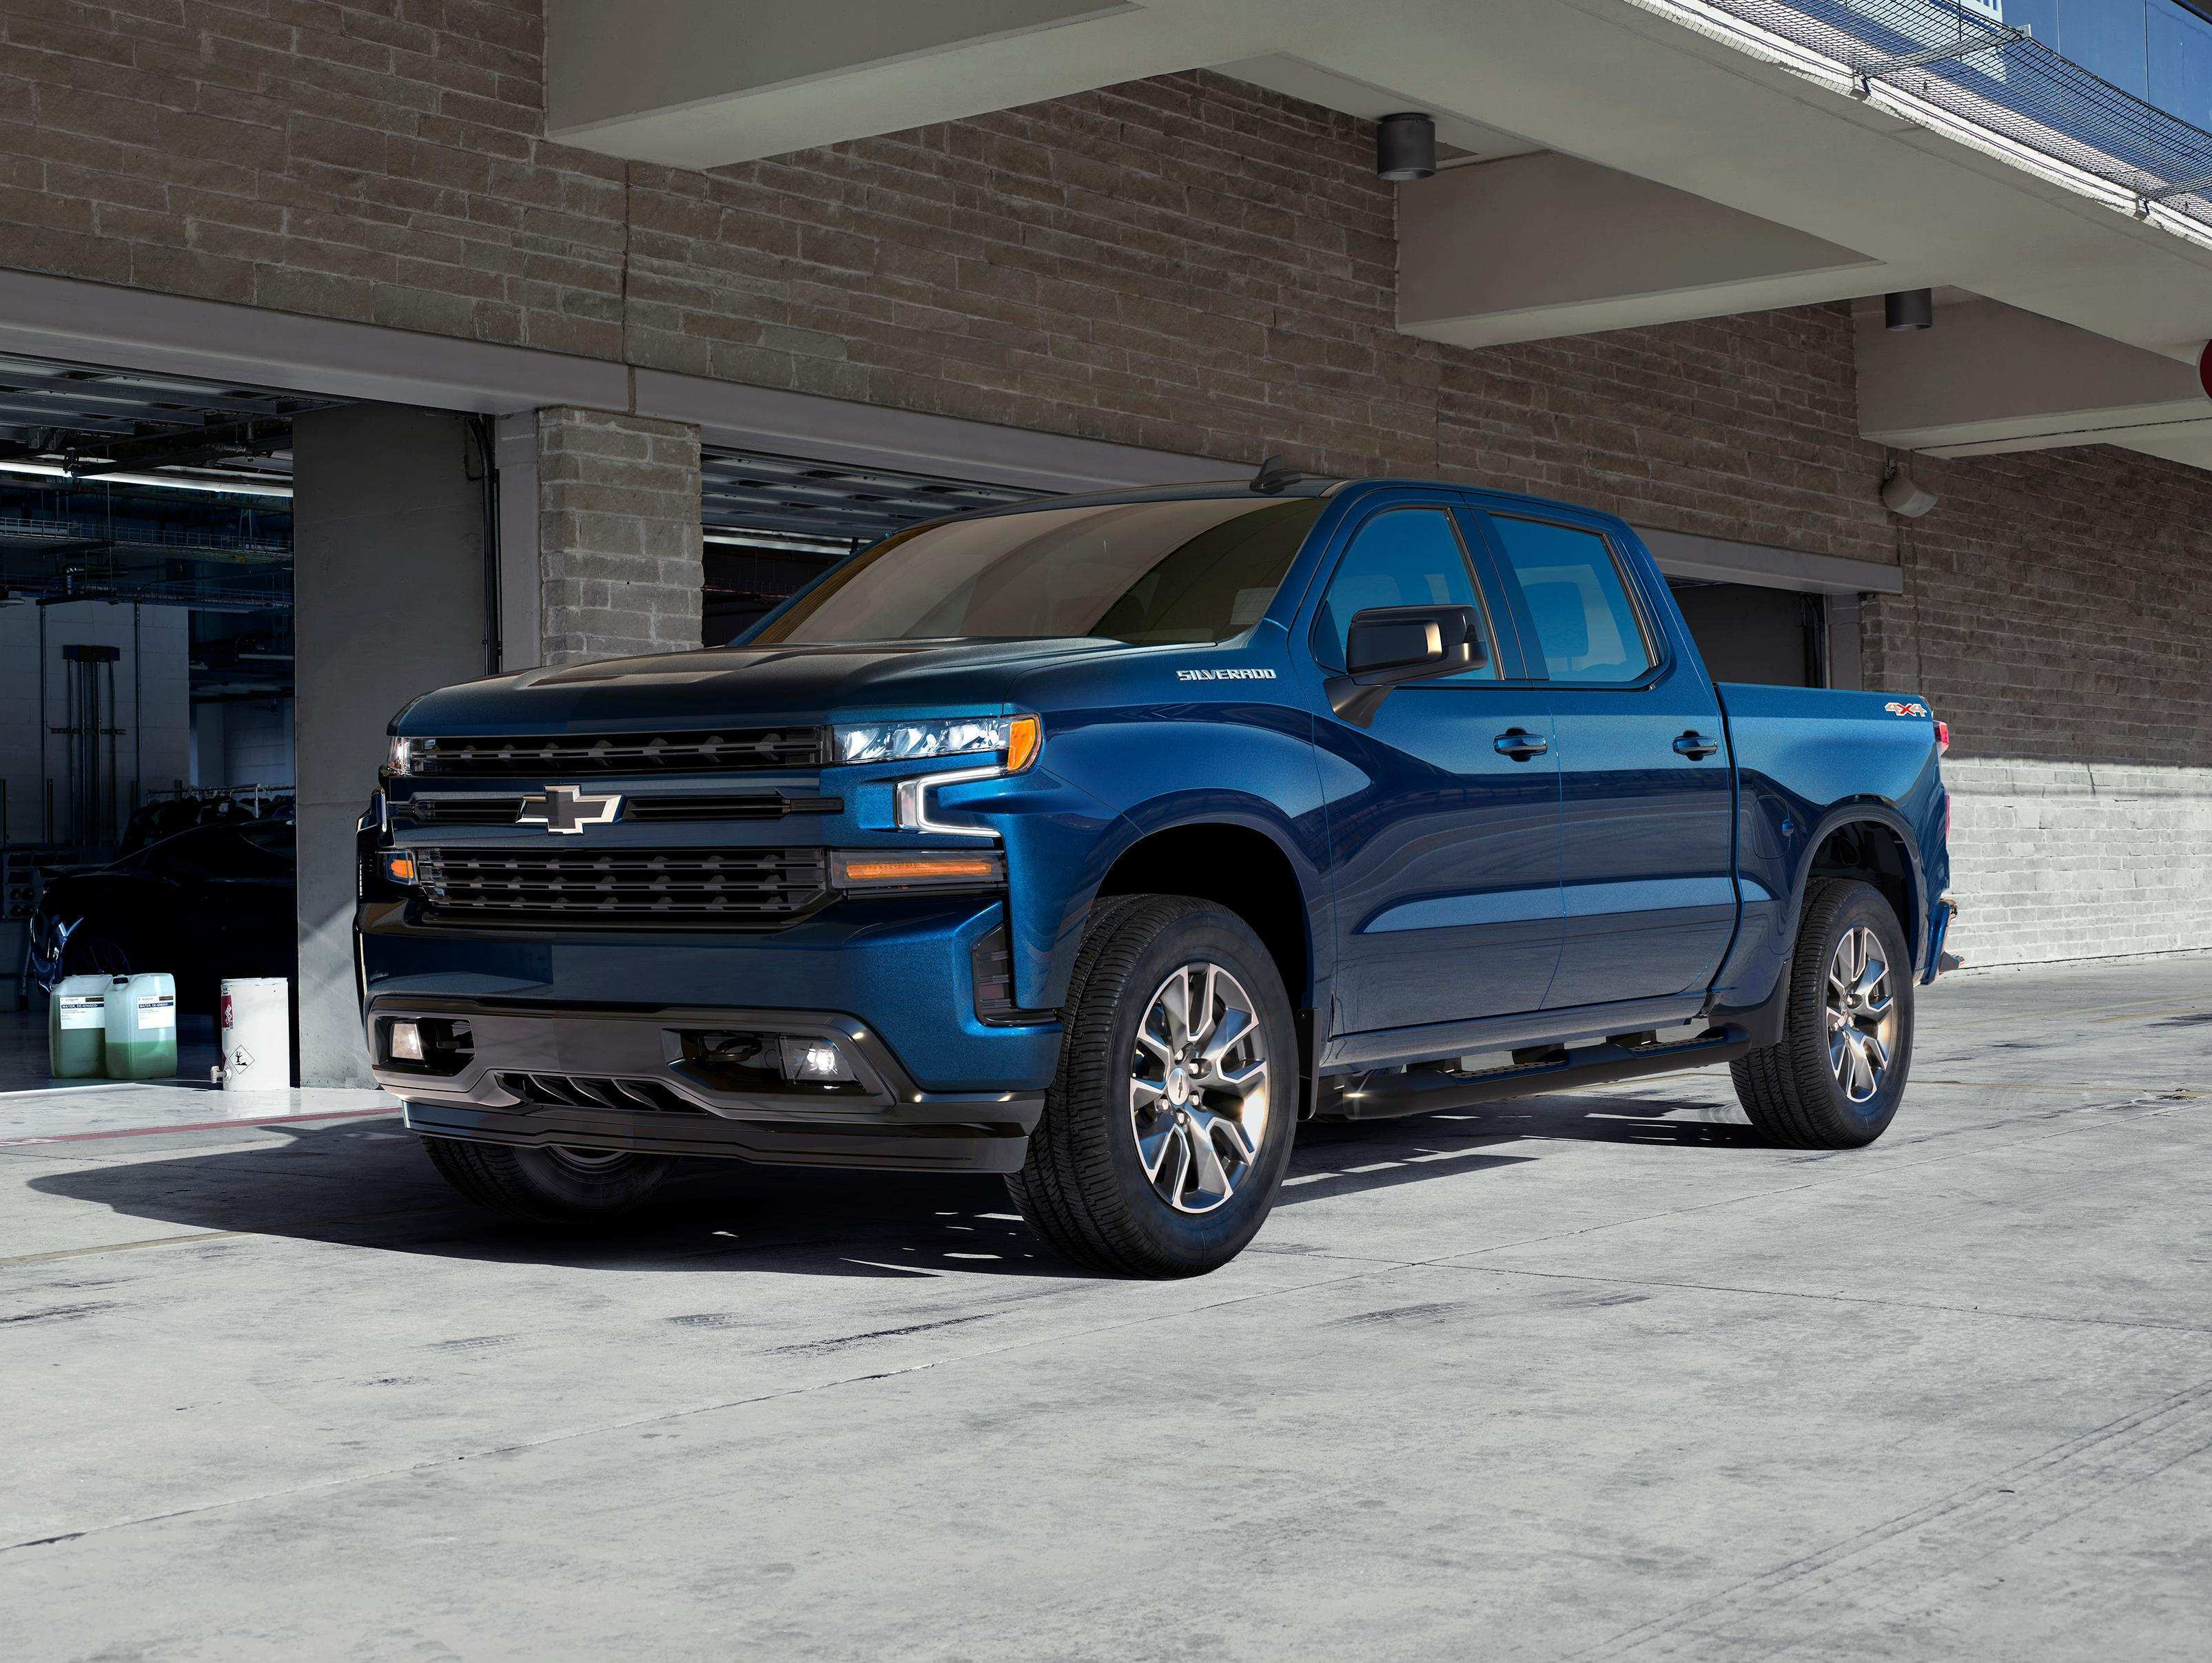 53 Concept of 2019 Chevrolet 1500 For Sale Picture with 2019 Chevrolet 1500 For Sale